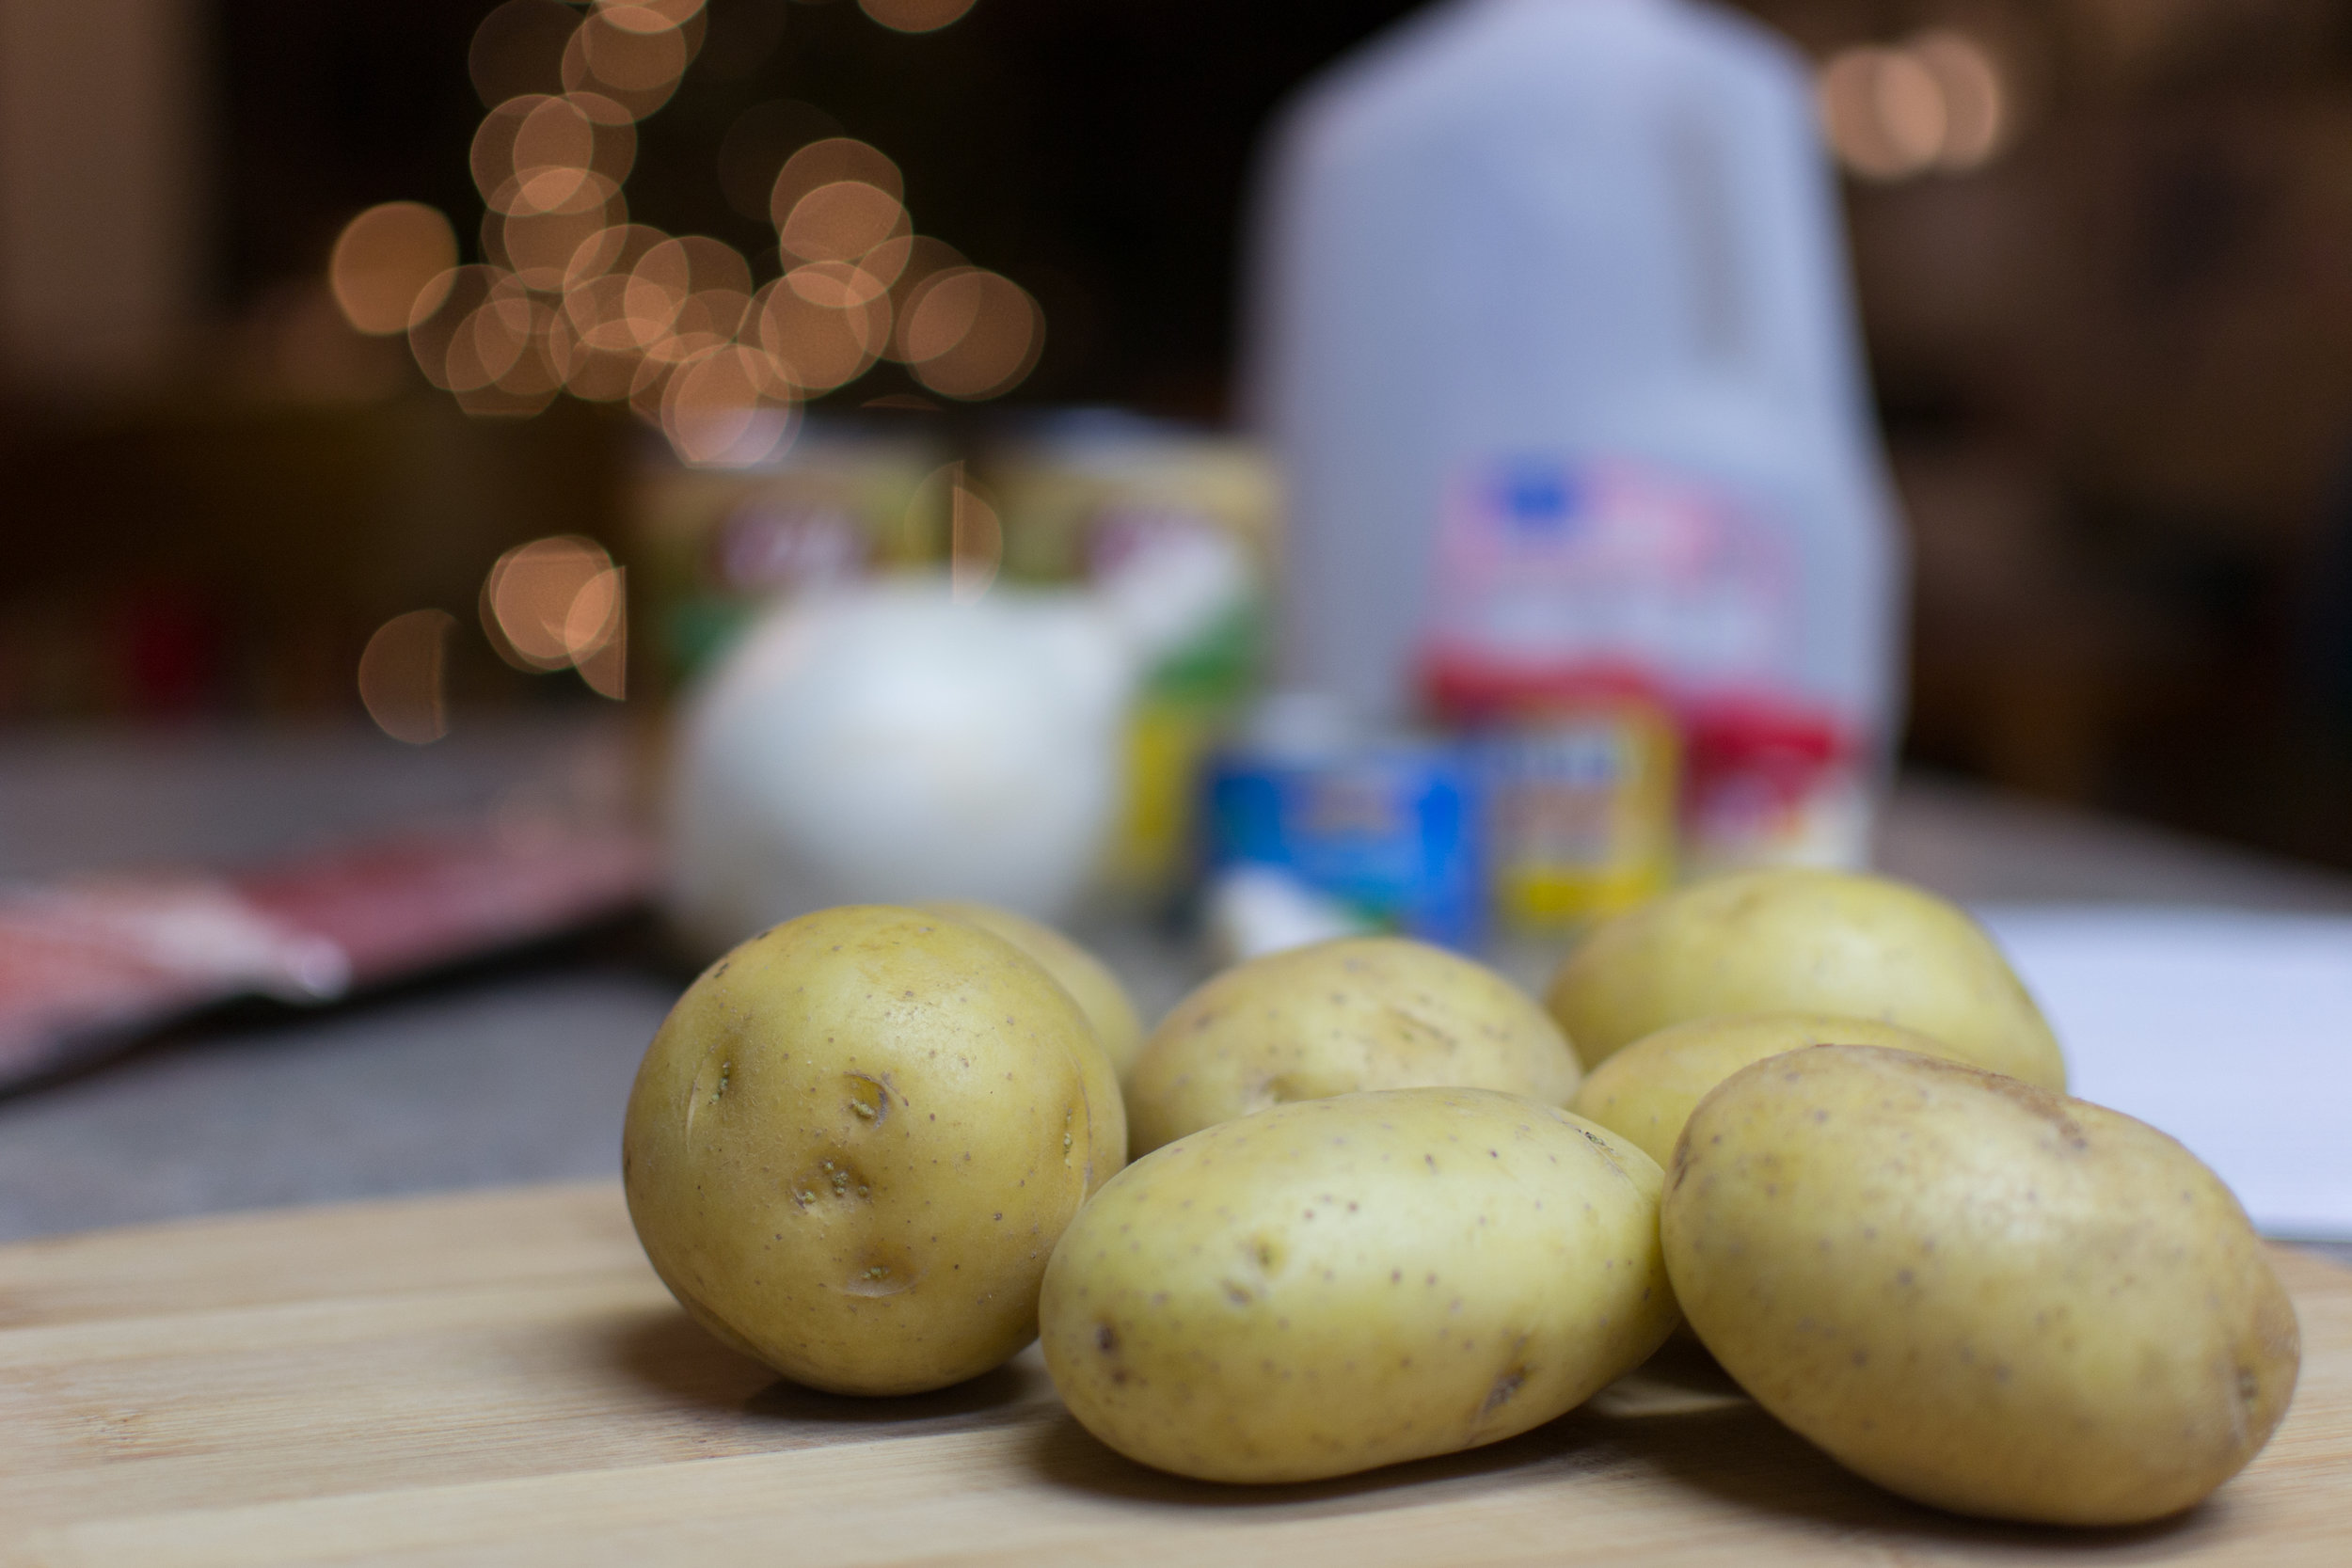 Potatoes for a new soup recipe with our Christmas lights still in the background